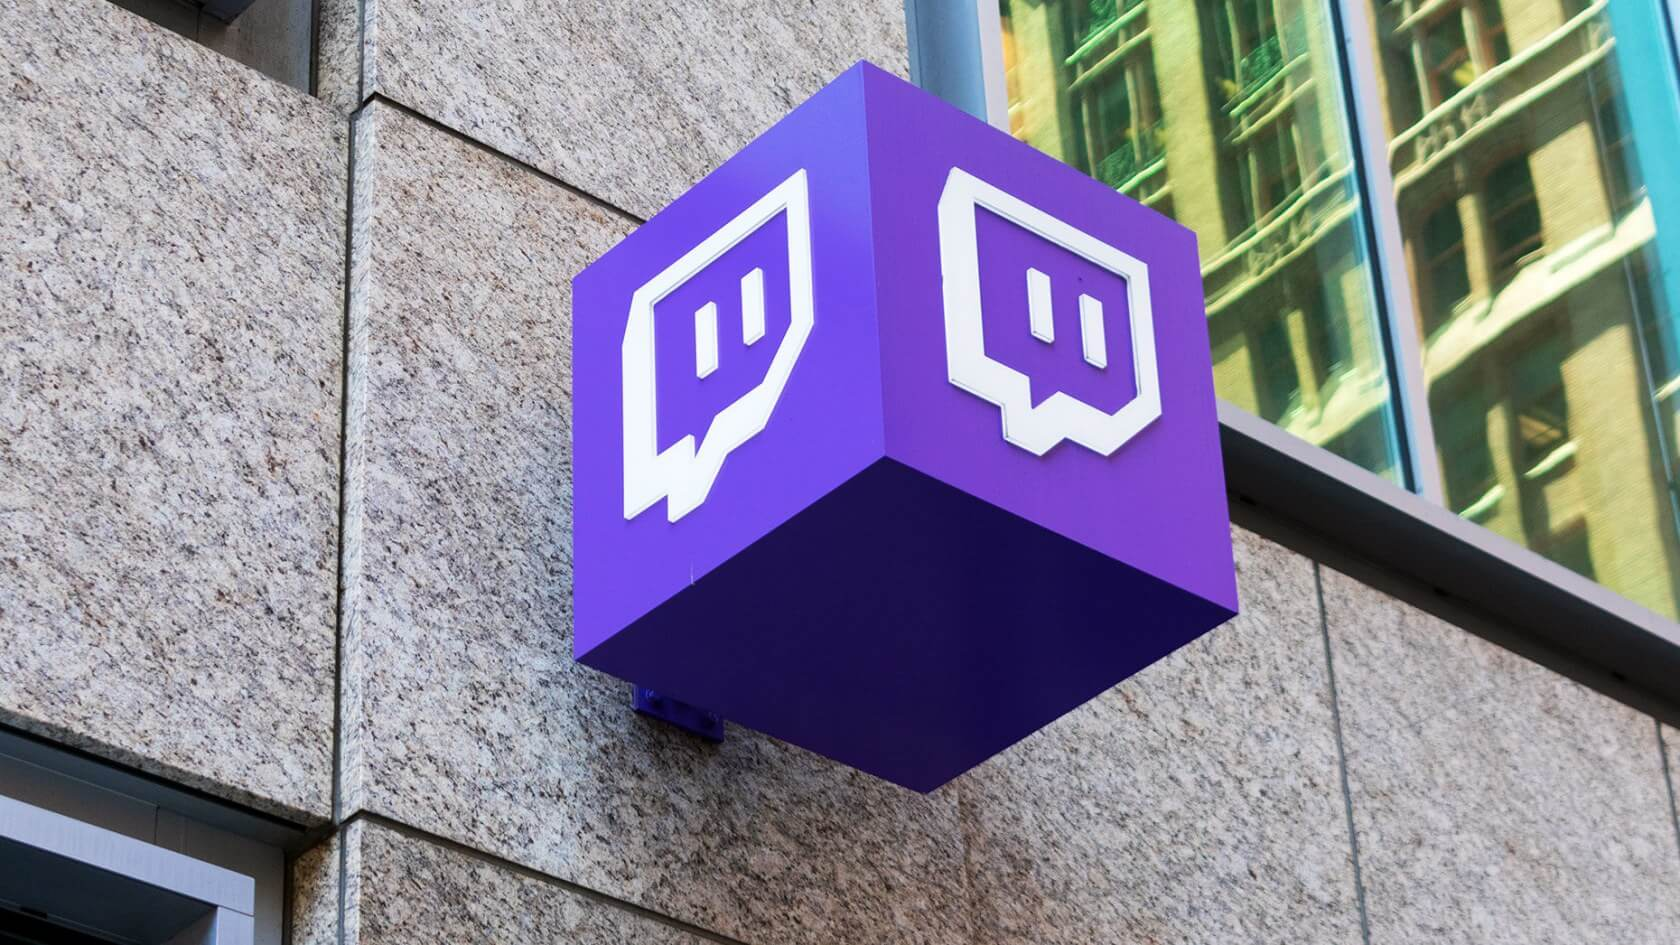 Family recovers the $20,000 son donated to Twitch streamers